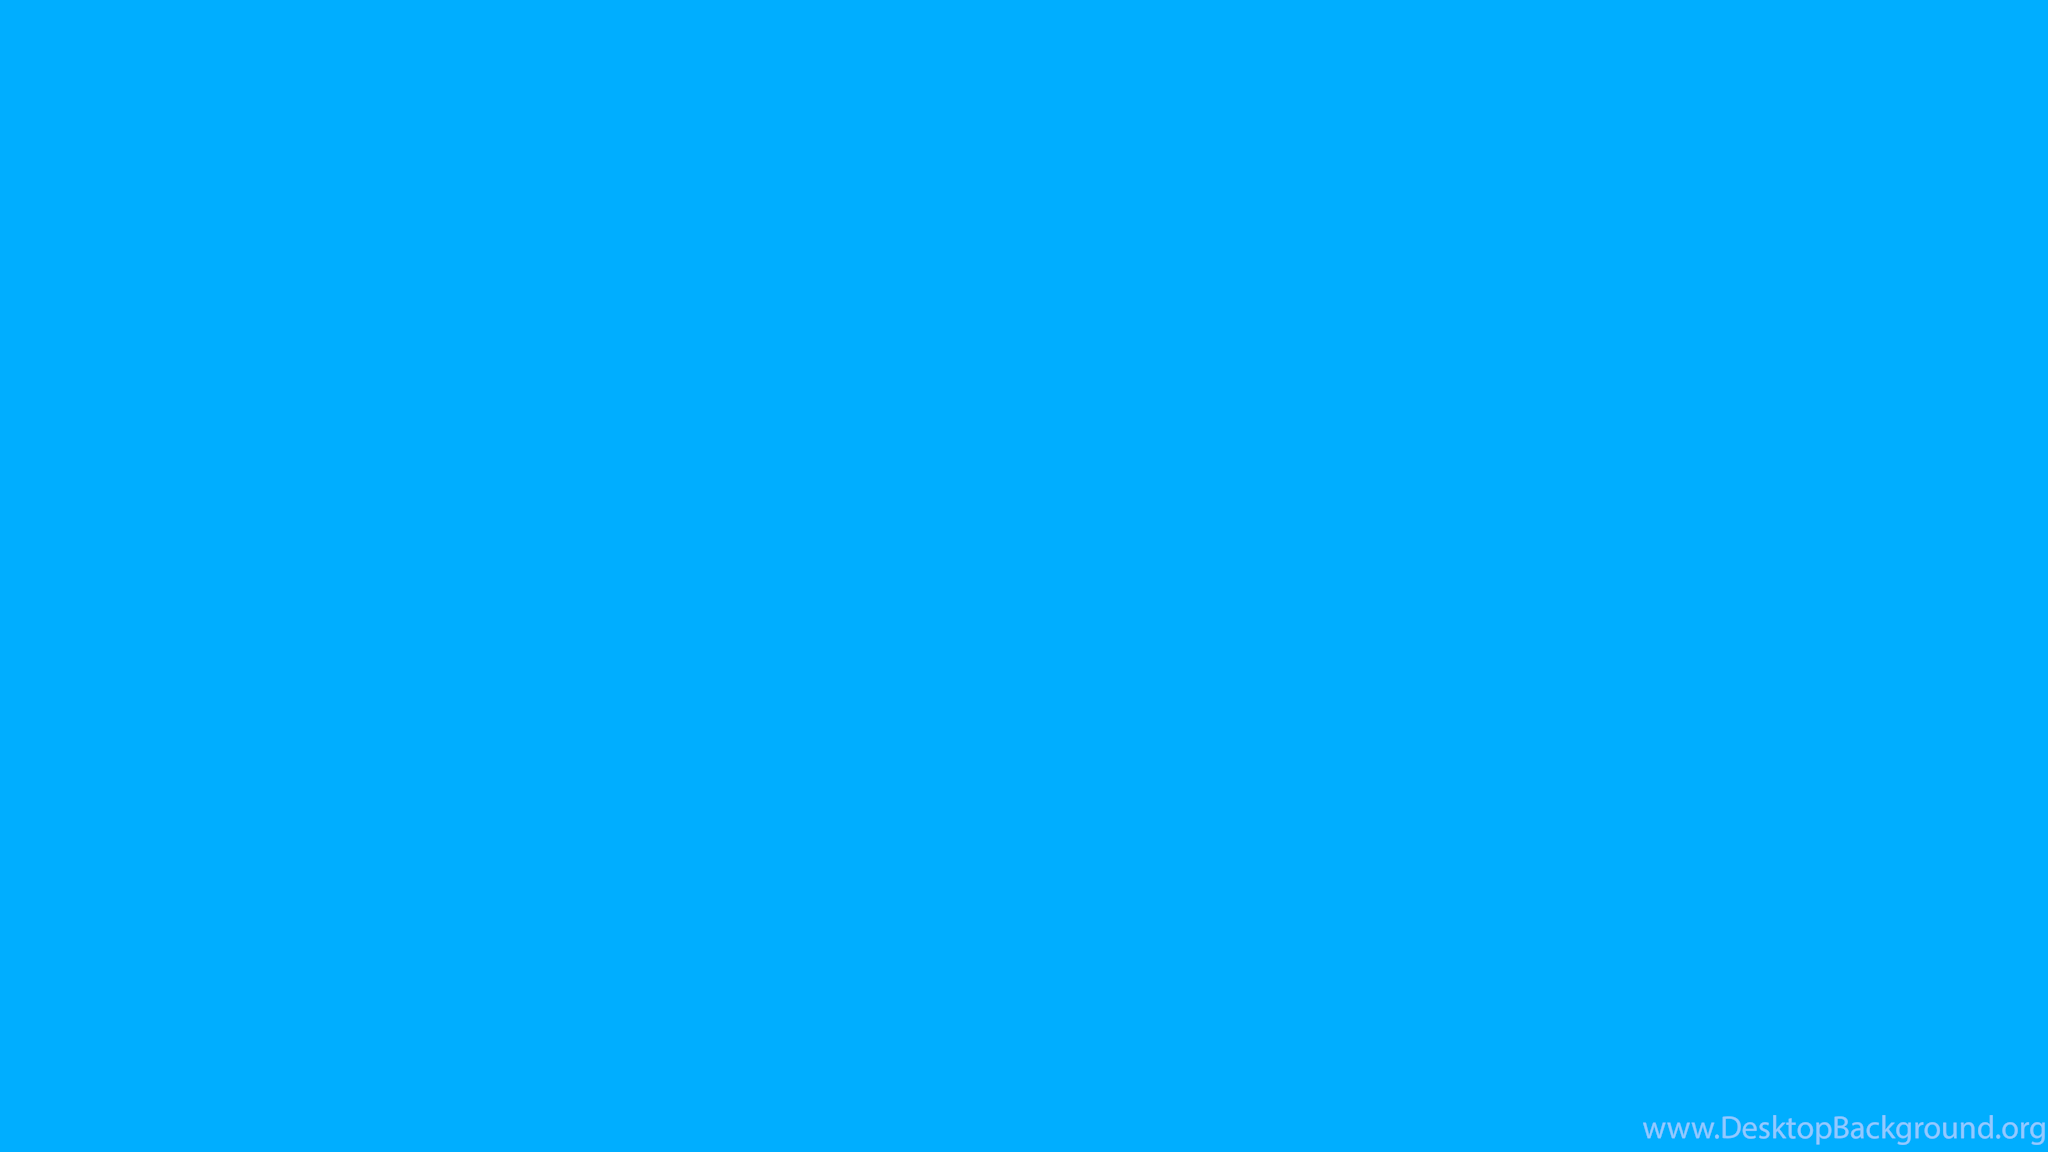 HD Plain Blue Wallpapers High Resolution Full Size HiReWallpapers